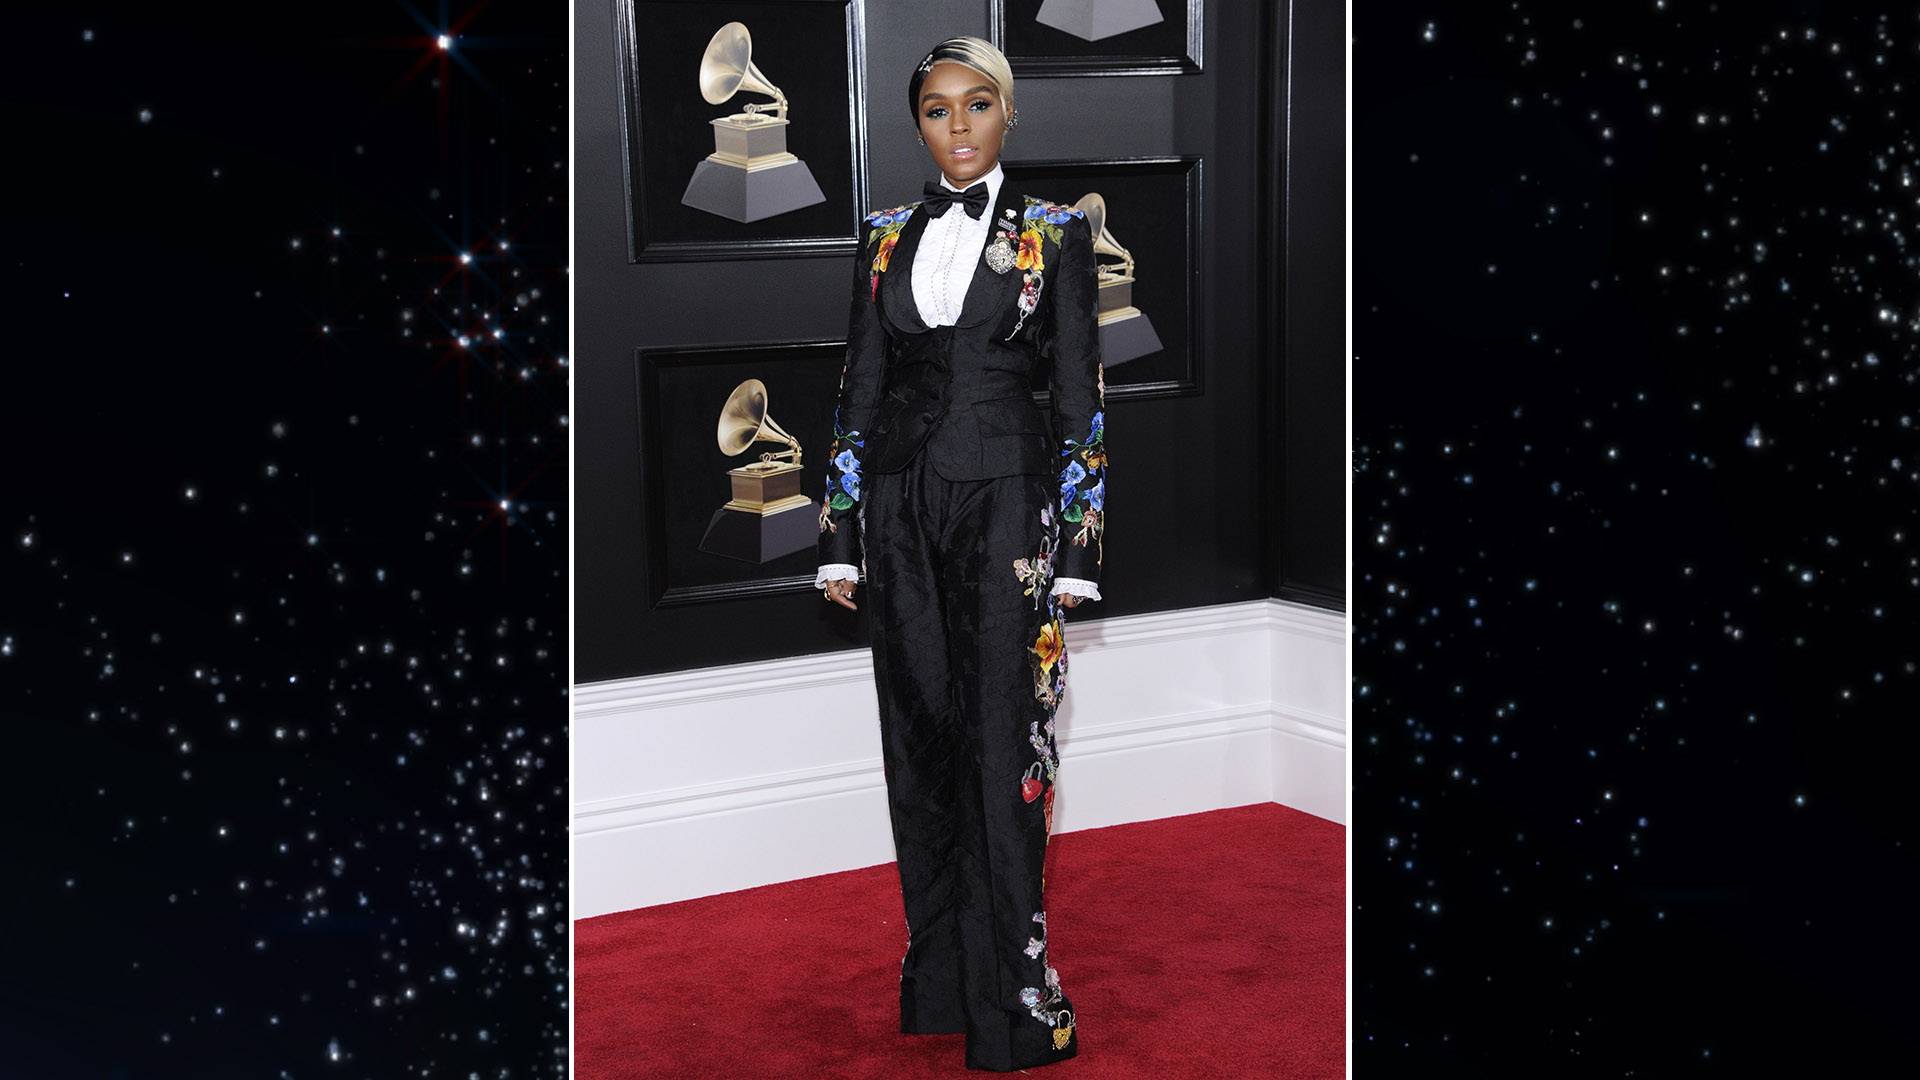 Janelle Monáe towers over the 60th Annual GRAMMY Awards red carpet in a Dolce & Gabbana floral suit.